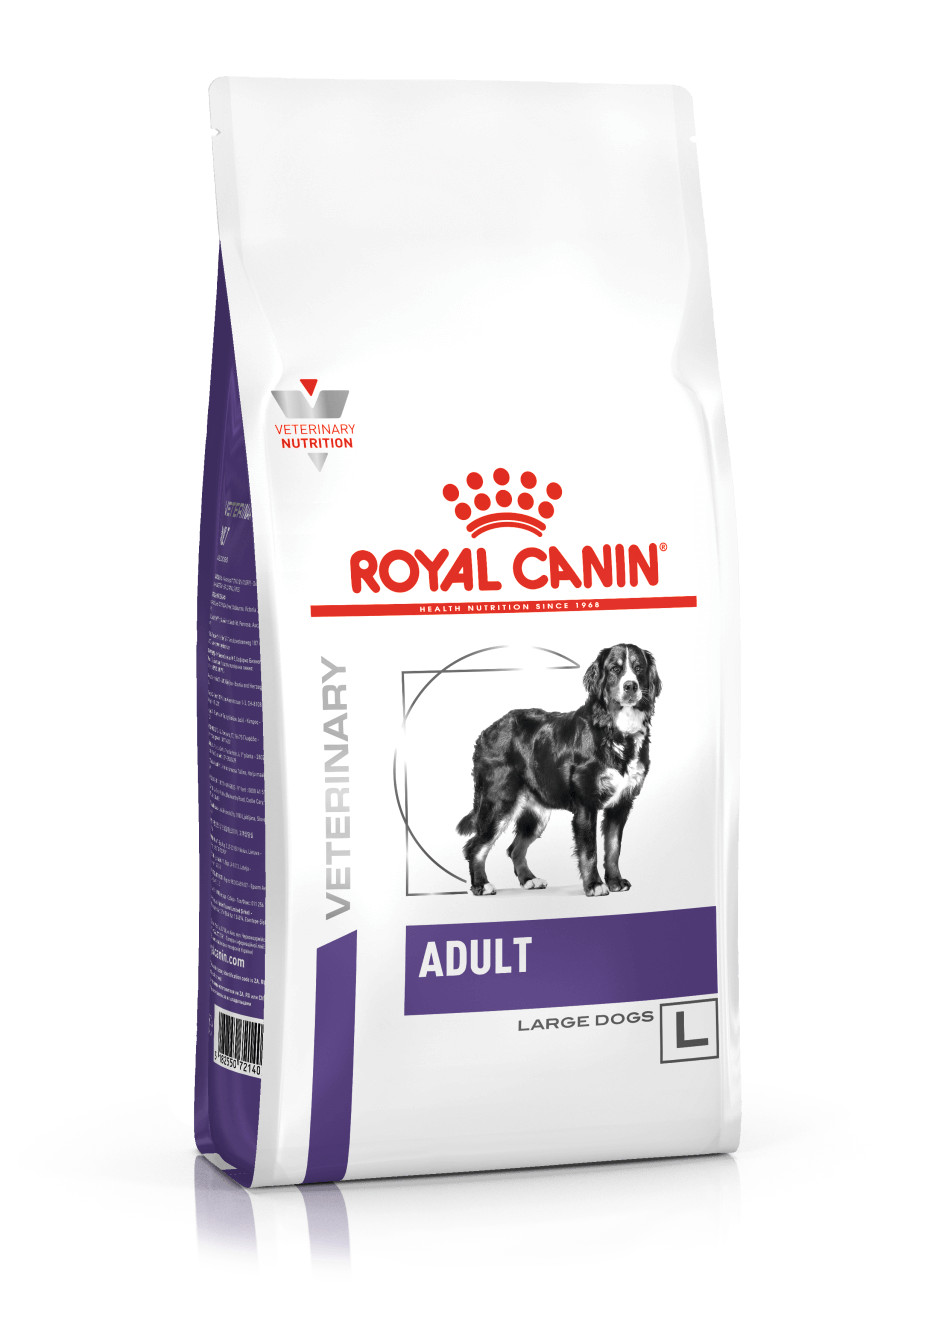 Royal Canin Veterinary Adult Large Dogs hondenvoer